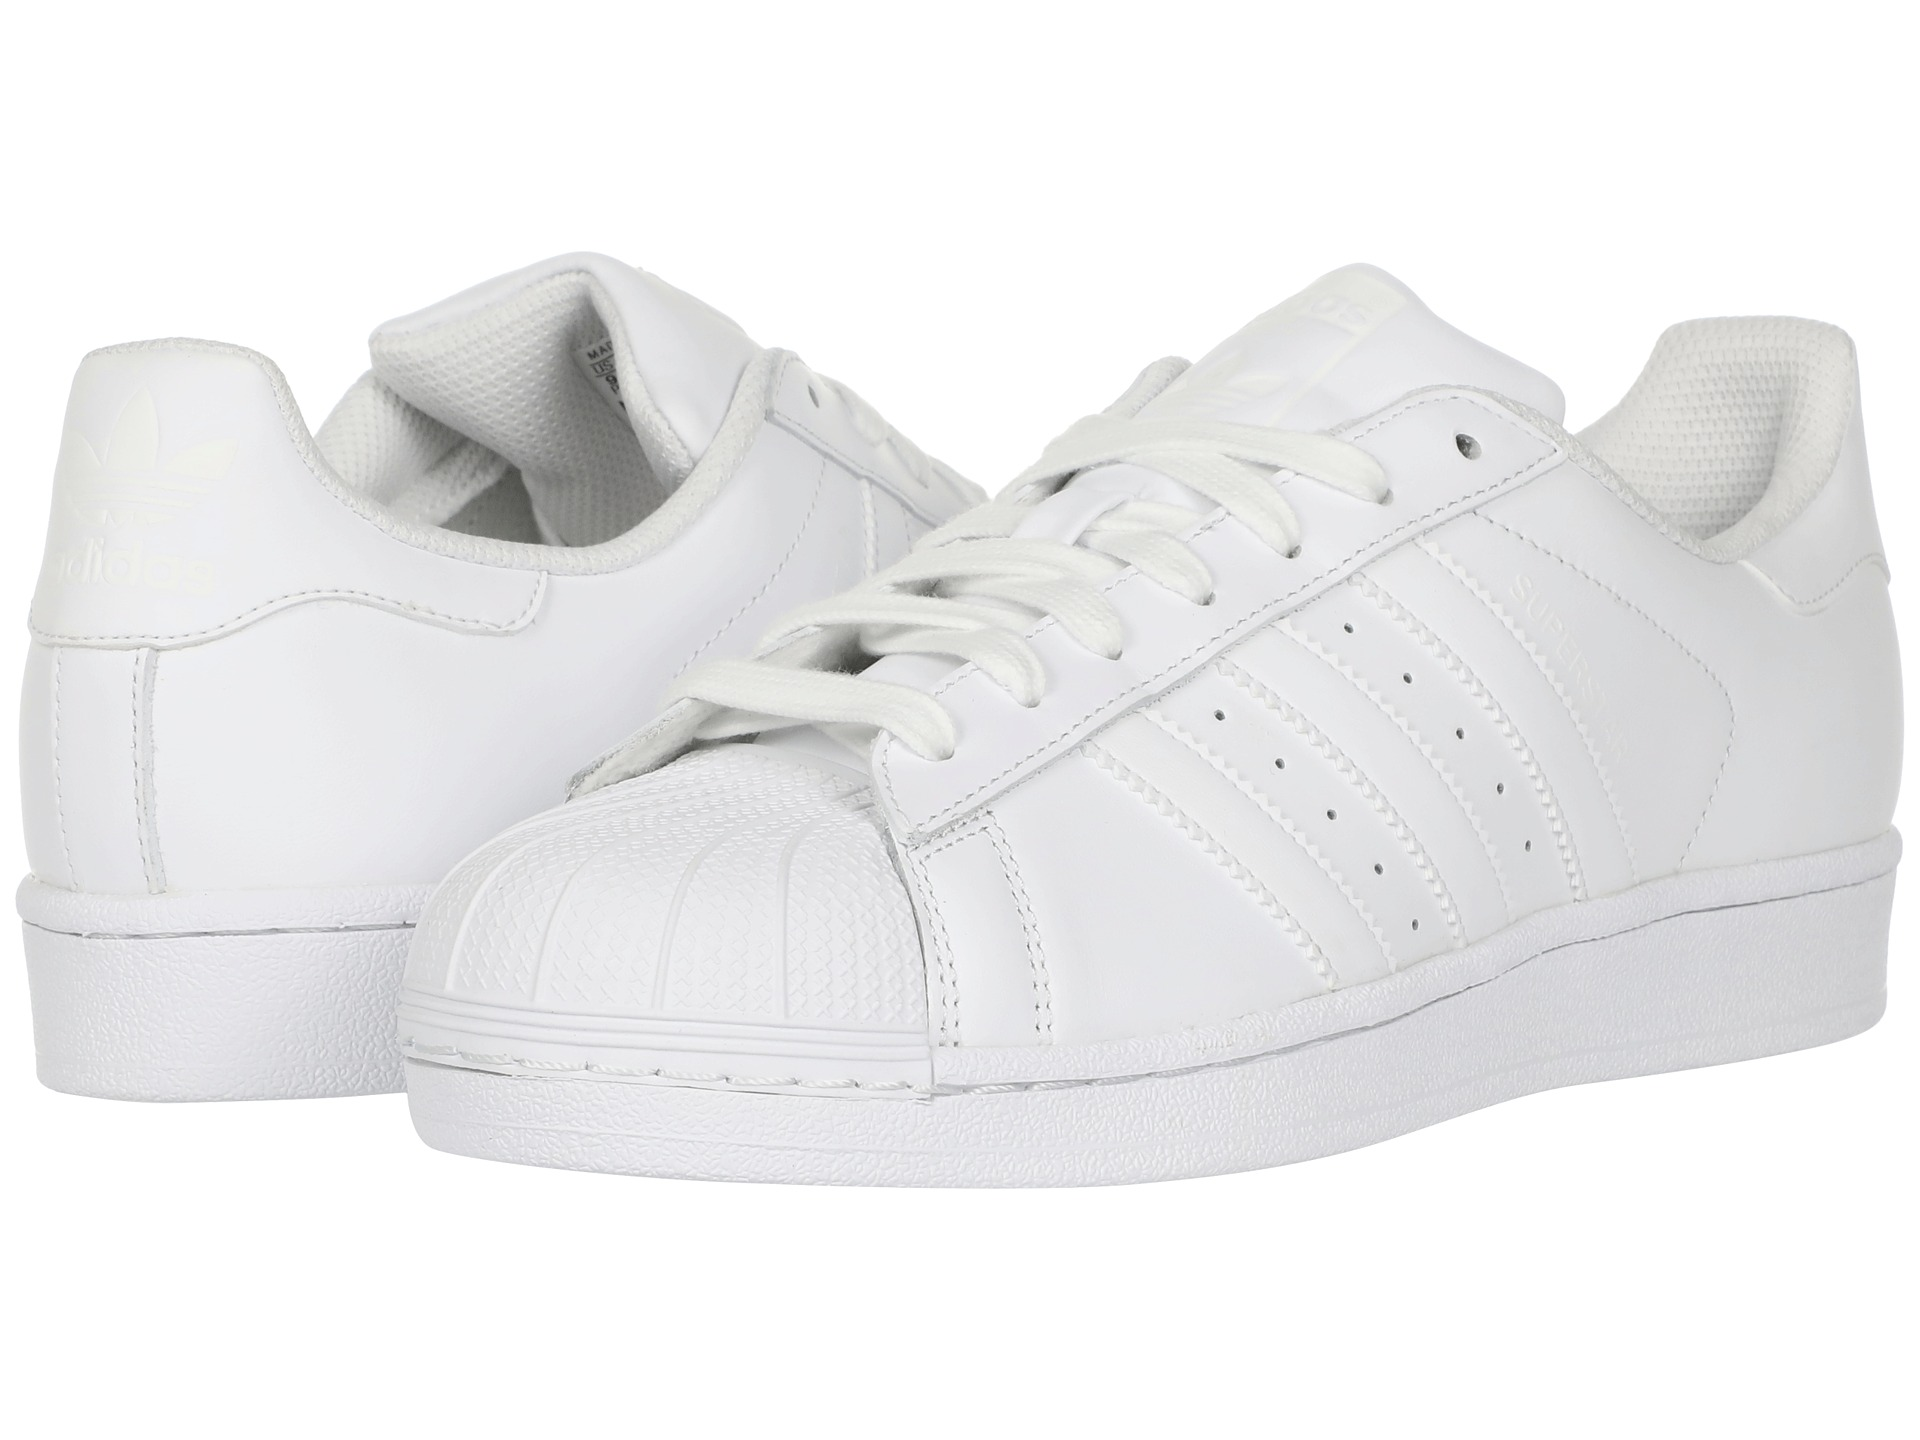 adidas Originals Superstar 2 Zappos com Free Shipping BOTH Ways a65e087623a